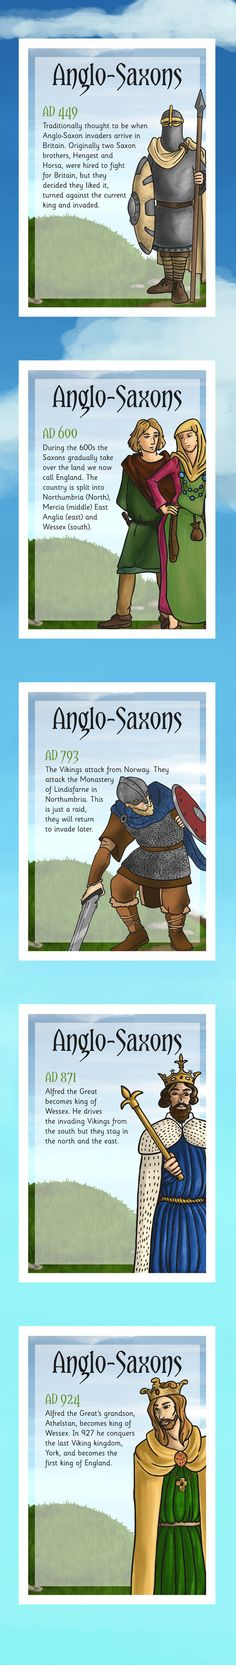 KS2 History Timelines- Anglo Saxons Timeline Posters